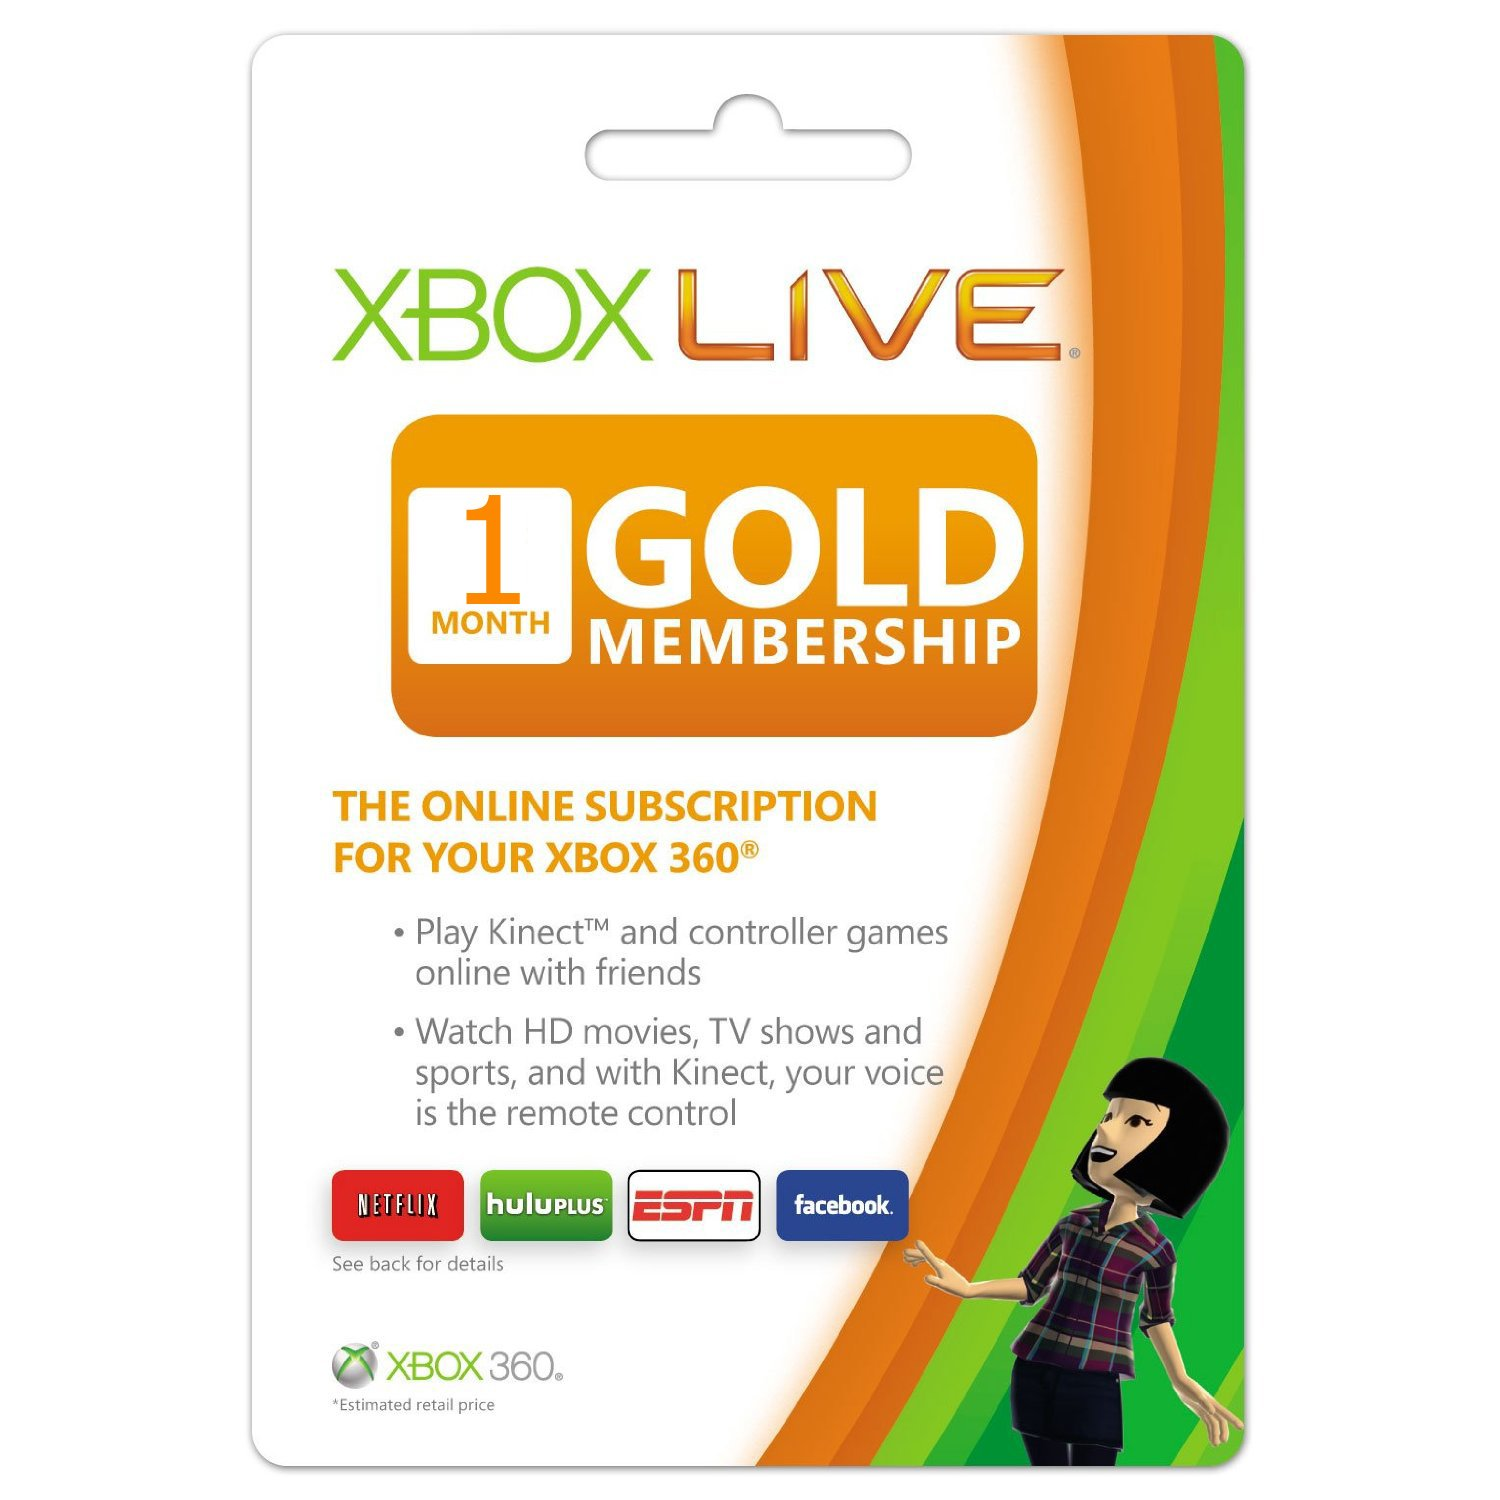 Amazon com: Xbox Live 1 Month Gold Membership Card: Video Games